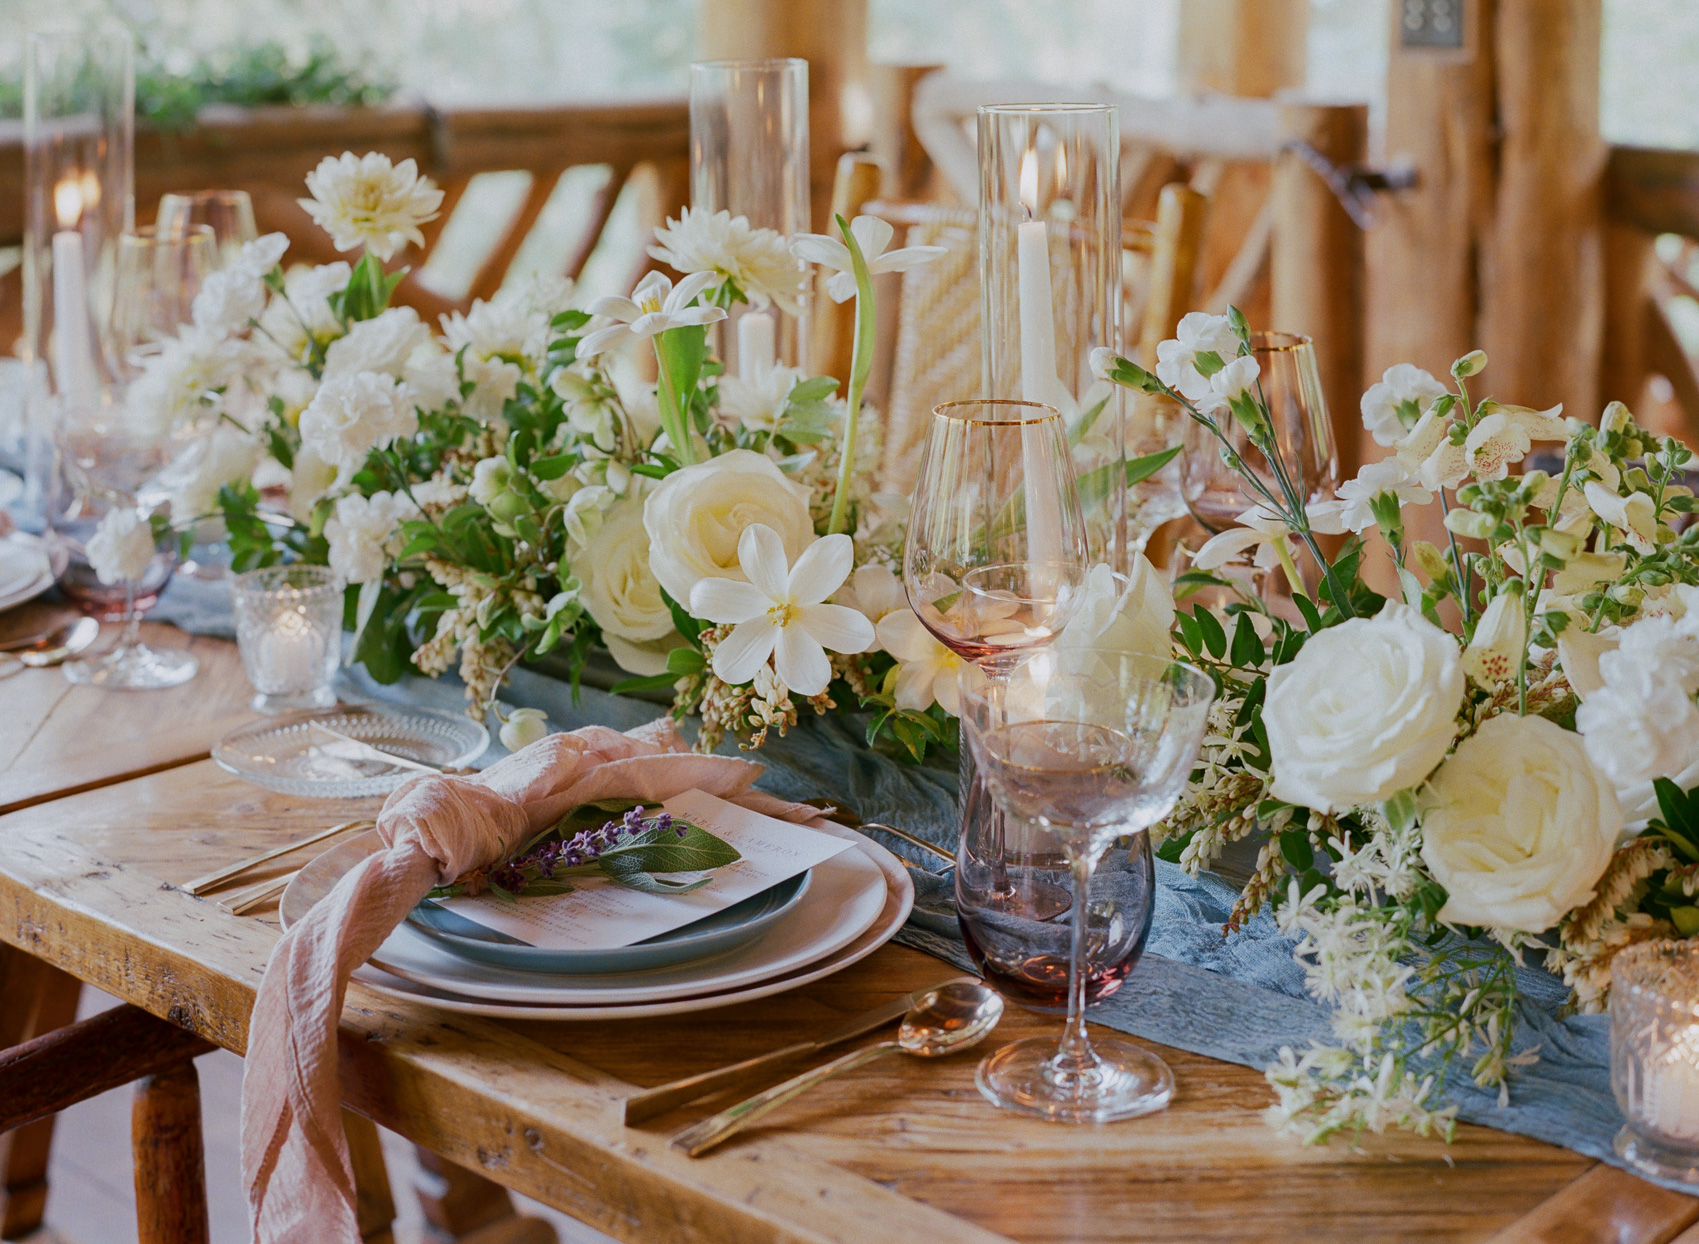 table setting up close with floral details and blue table runner